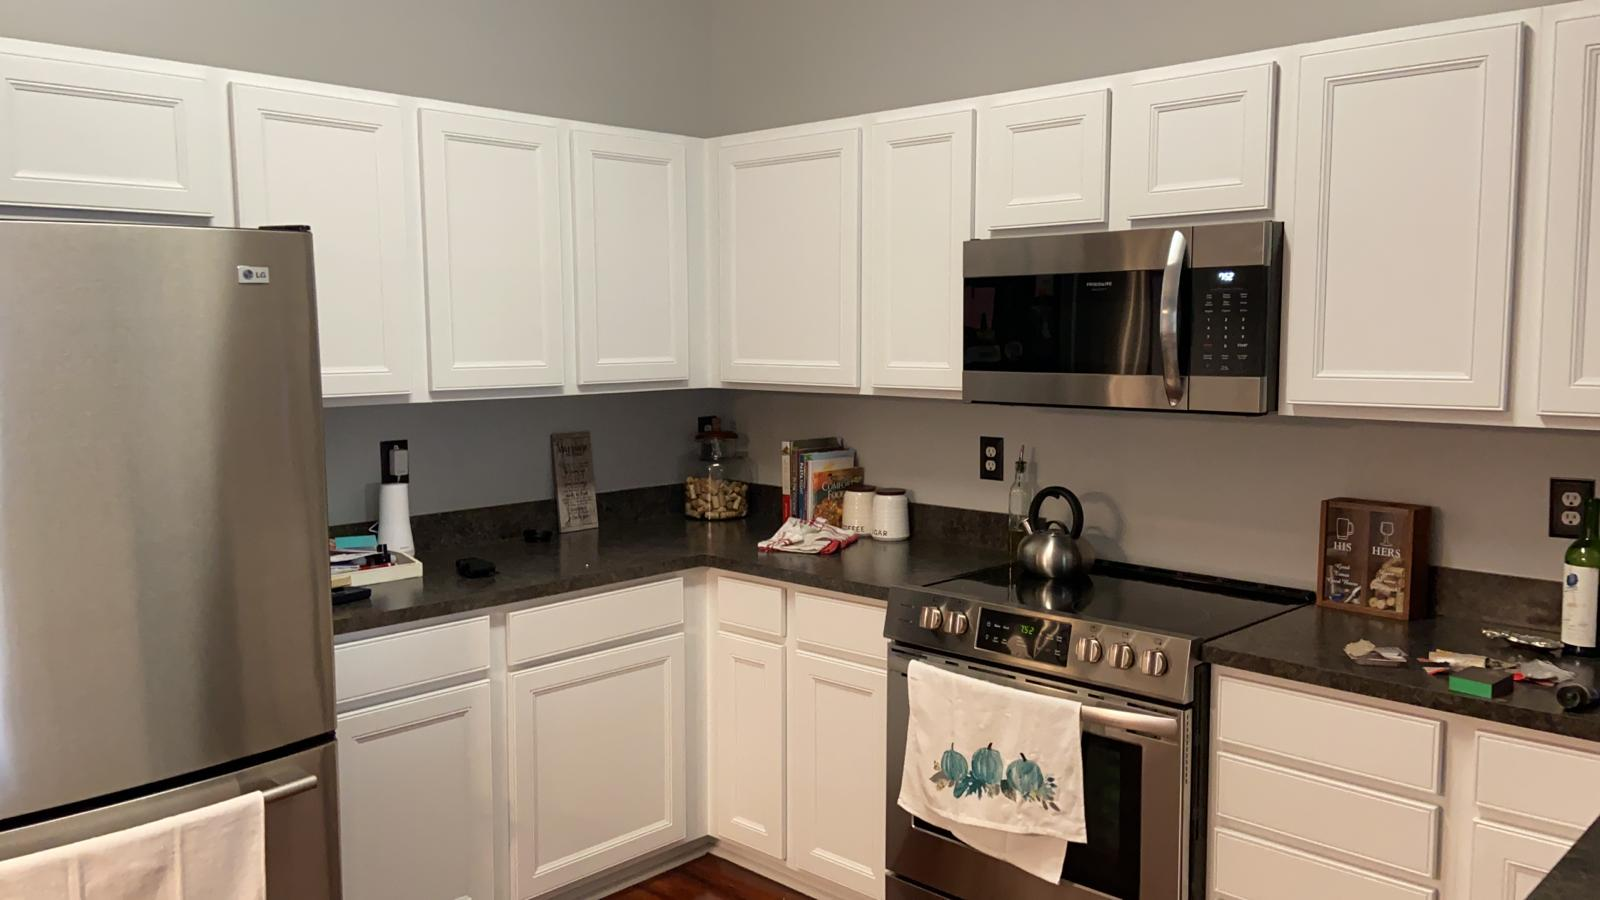 Cabinet Painters Charlotte Nc Residential Painting Contractors